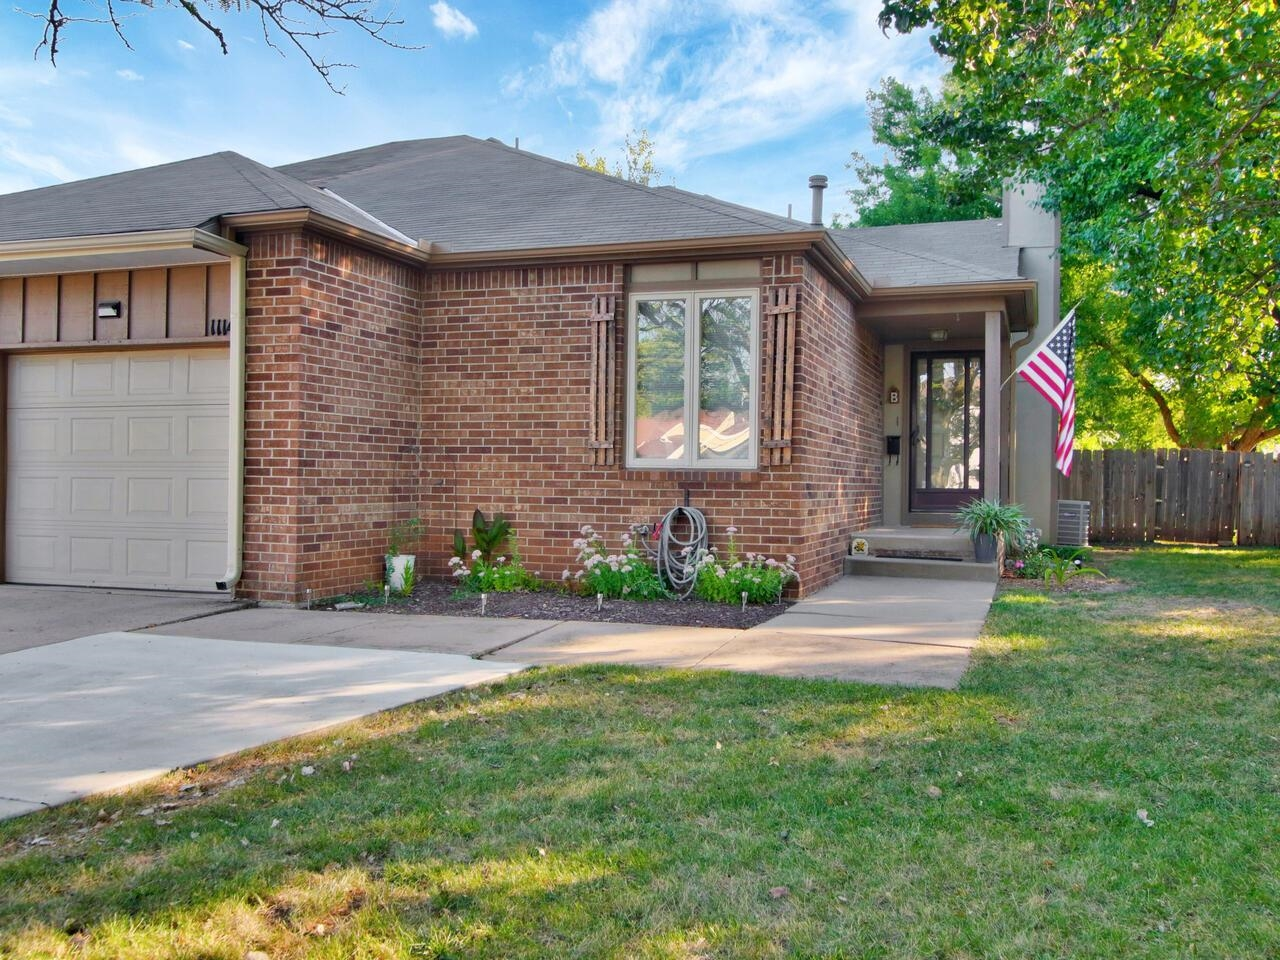 Don't Miss this move-in ready home in east Wichita. Pride of ownership shows throughout the house. G